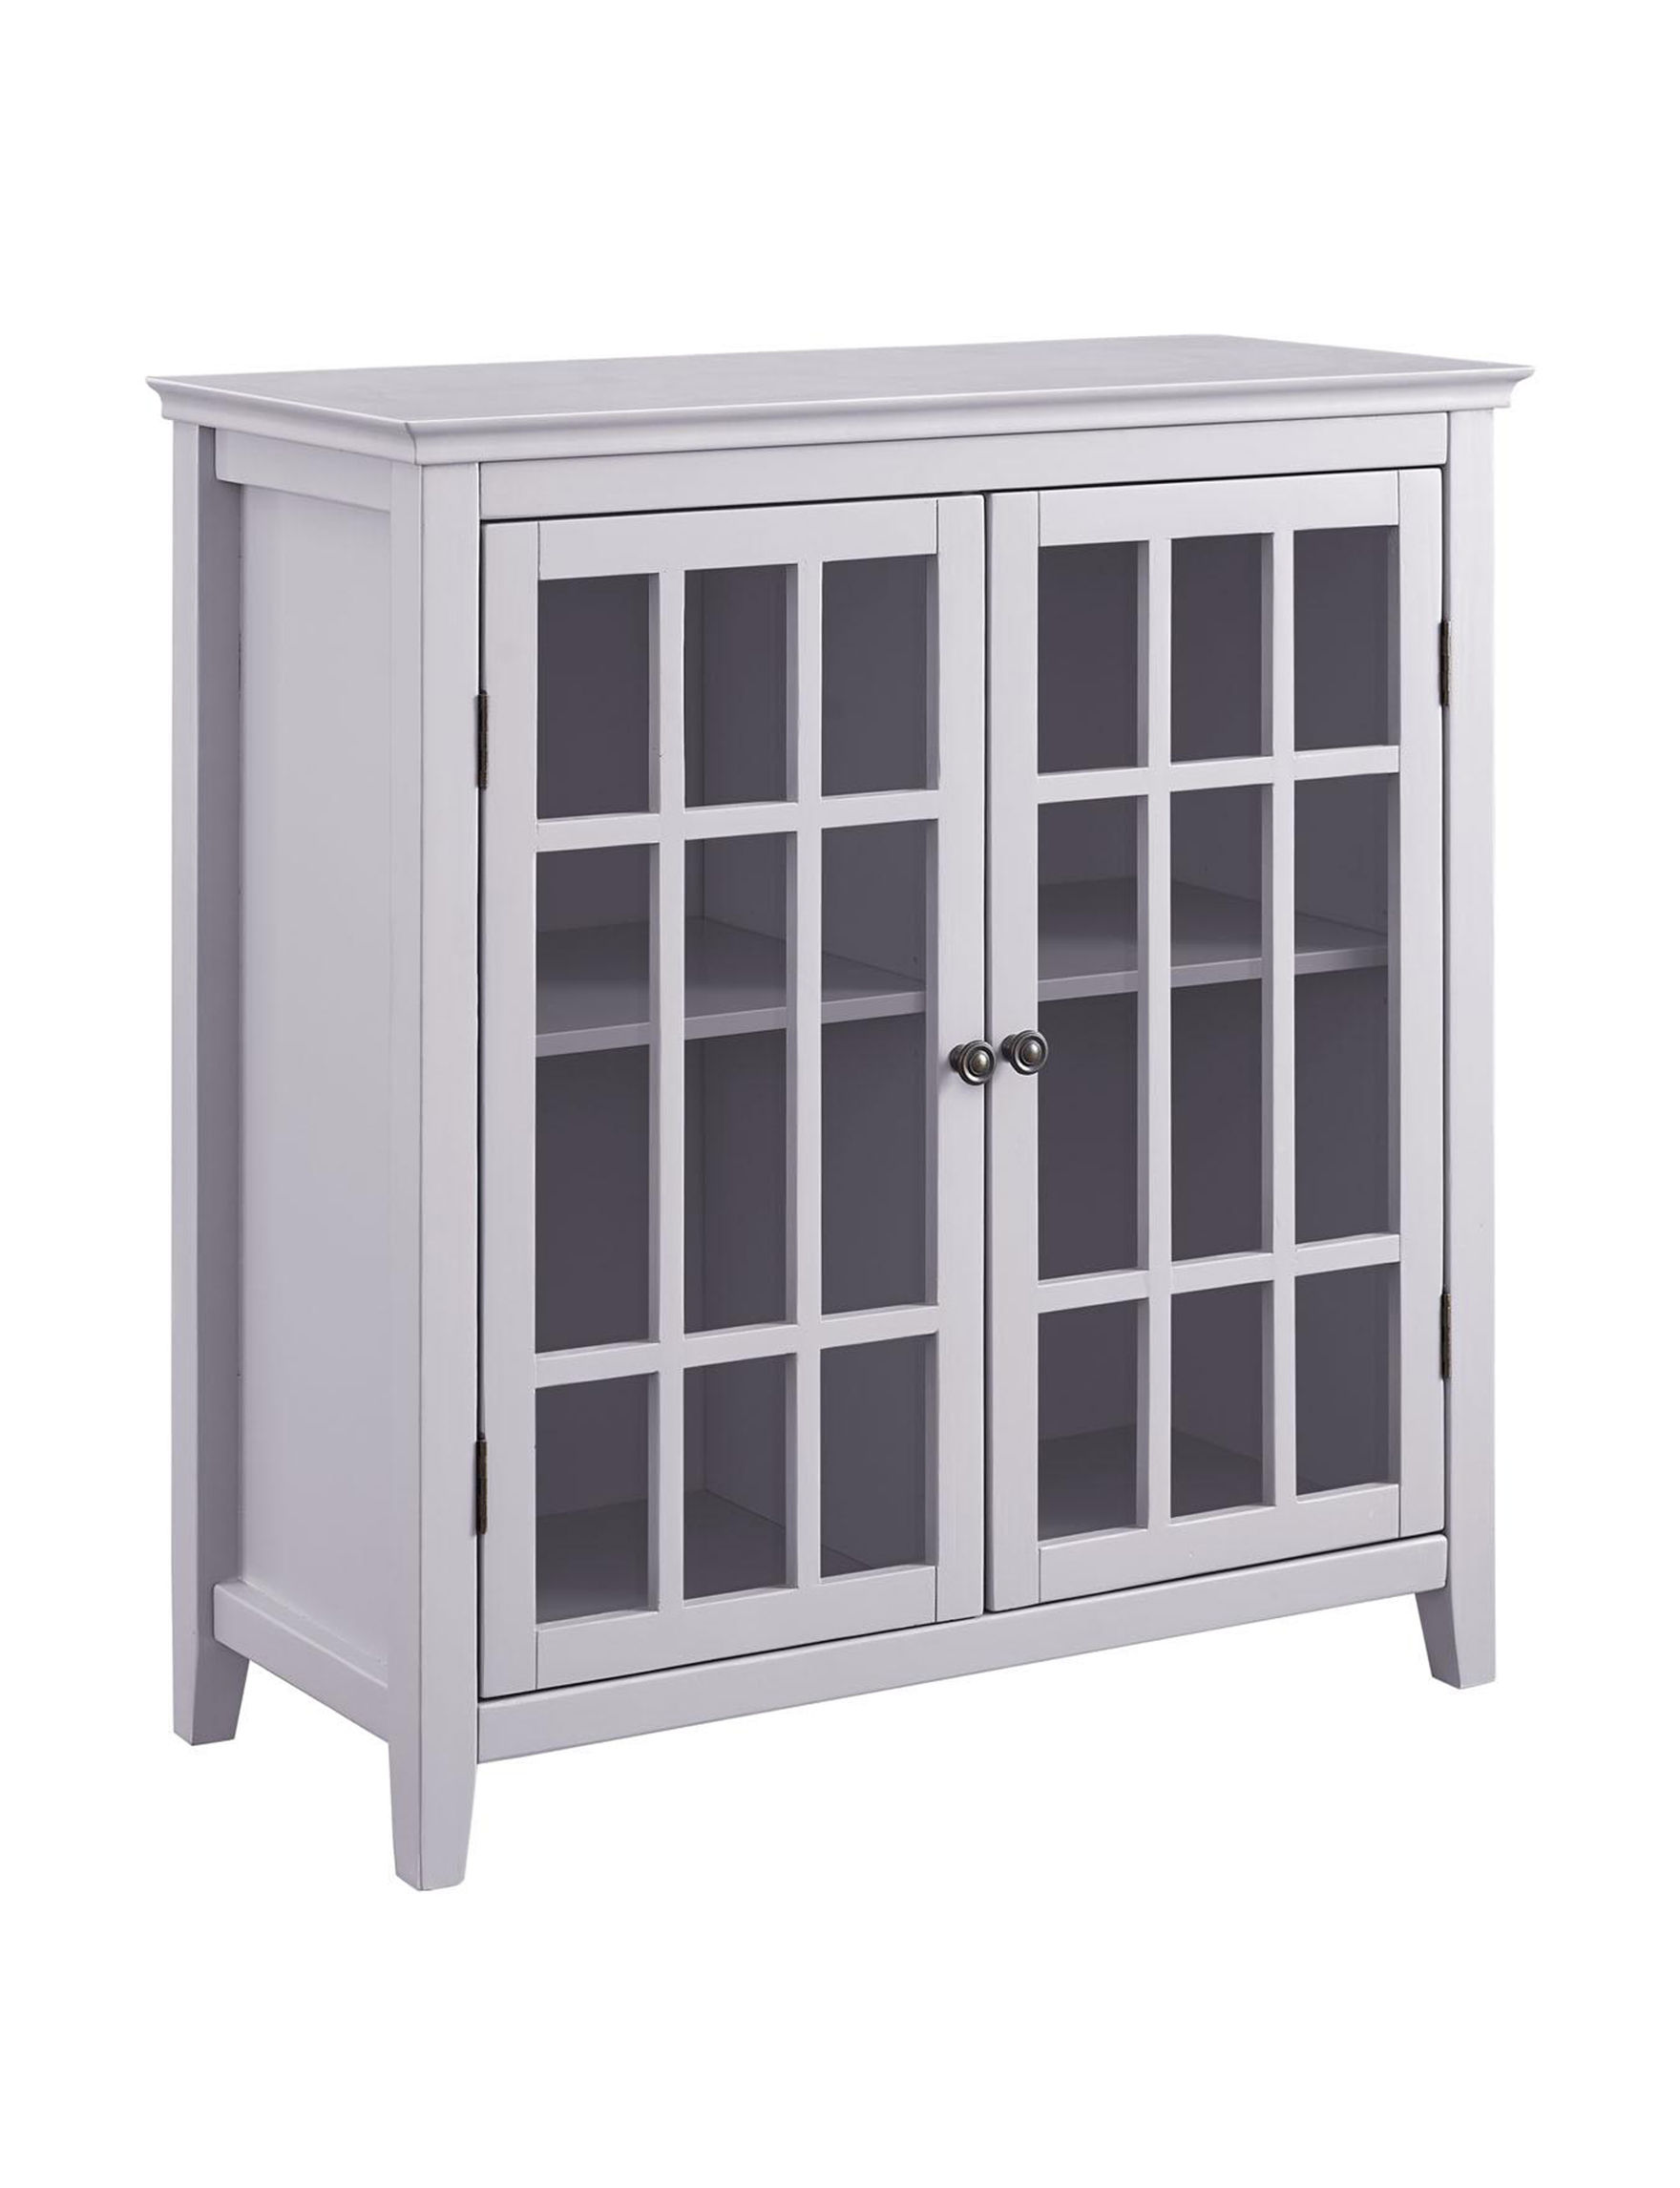 Linon Grey Cabinets & Cupboards Living Room Furniture